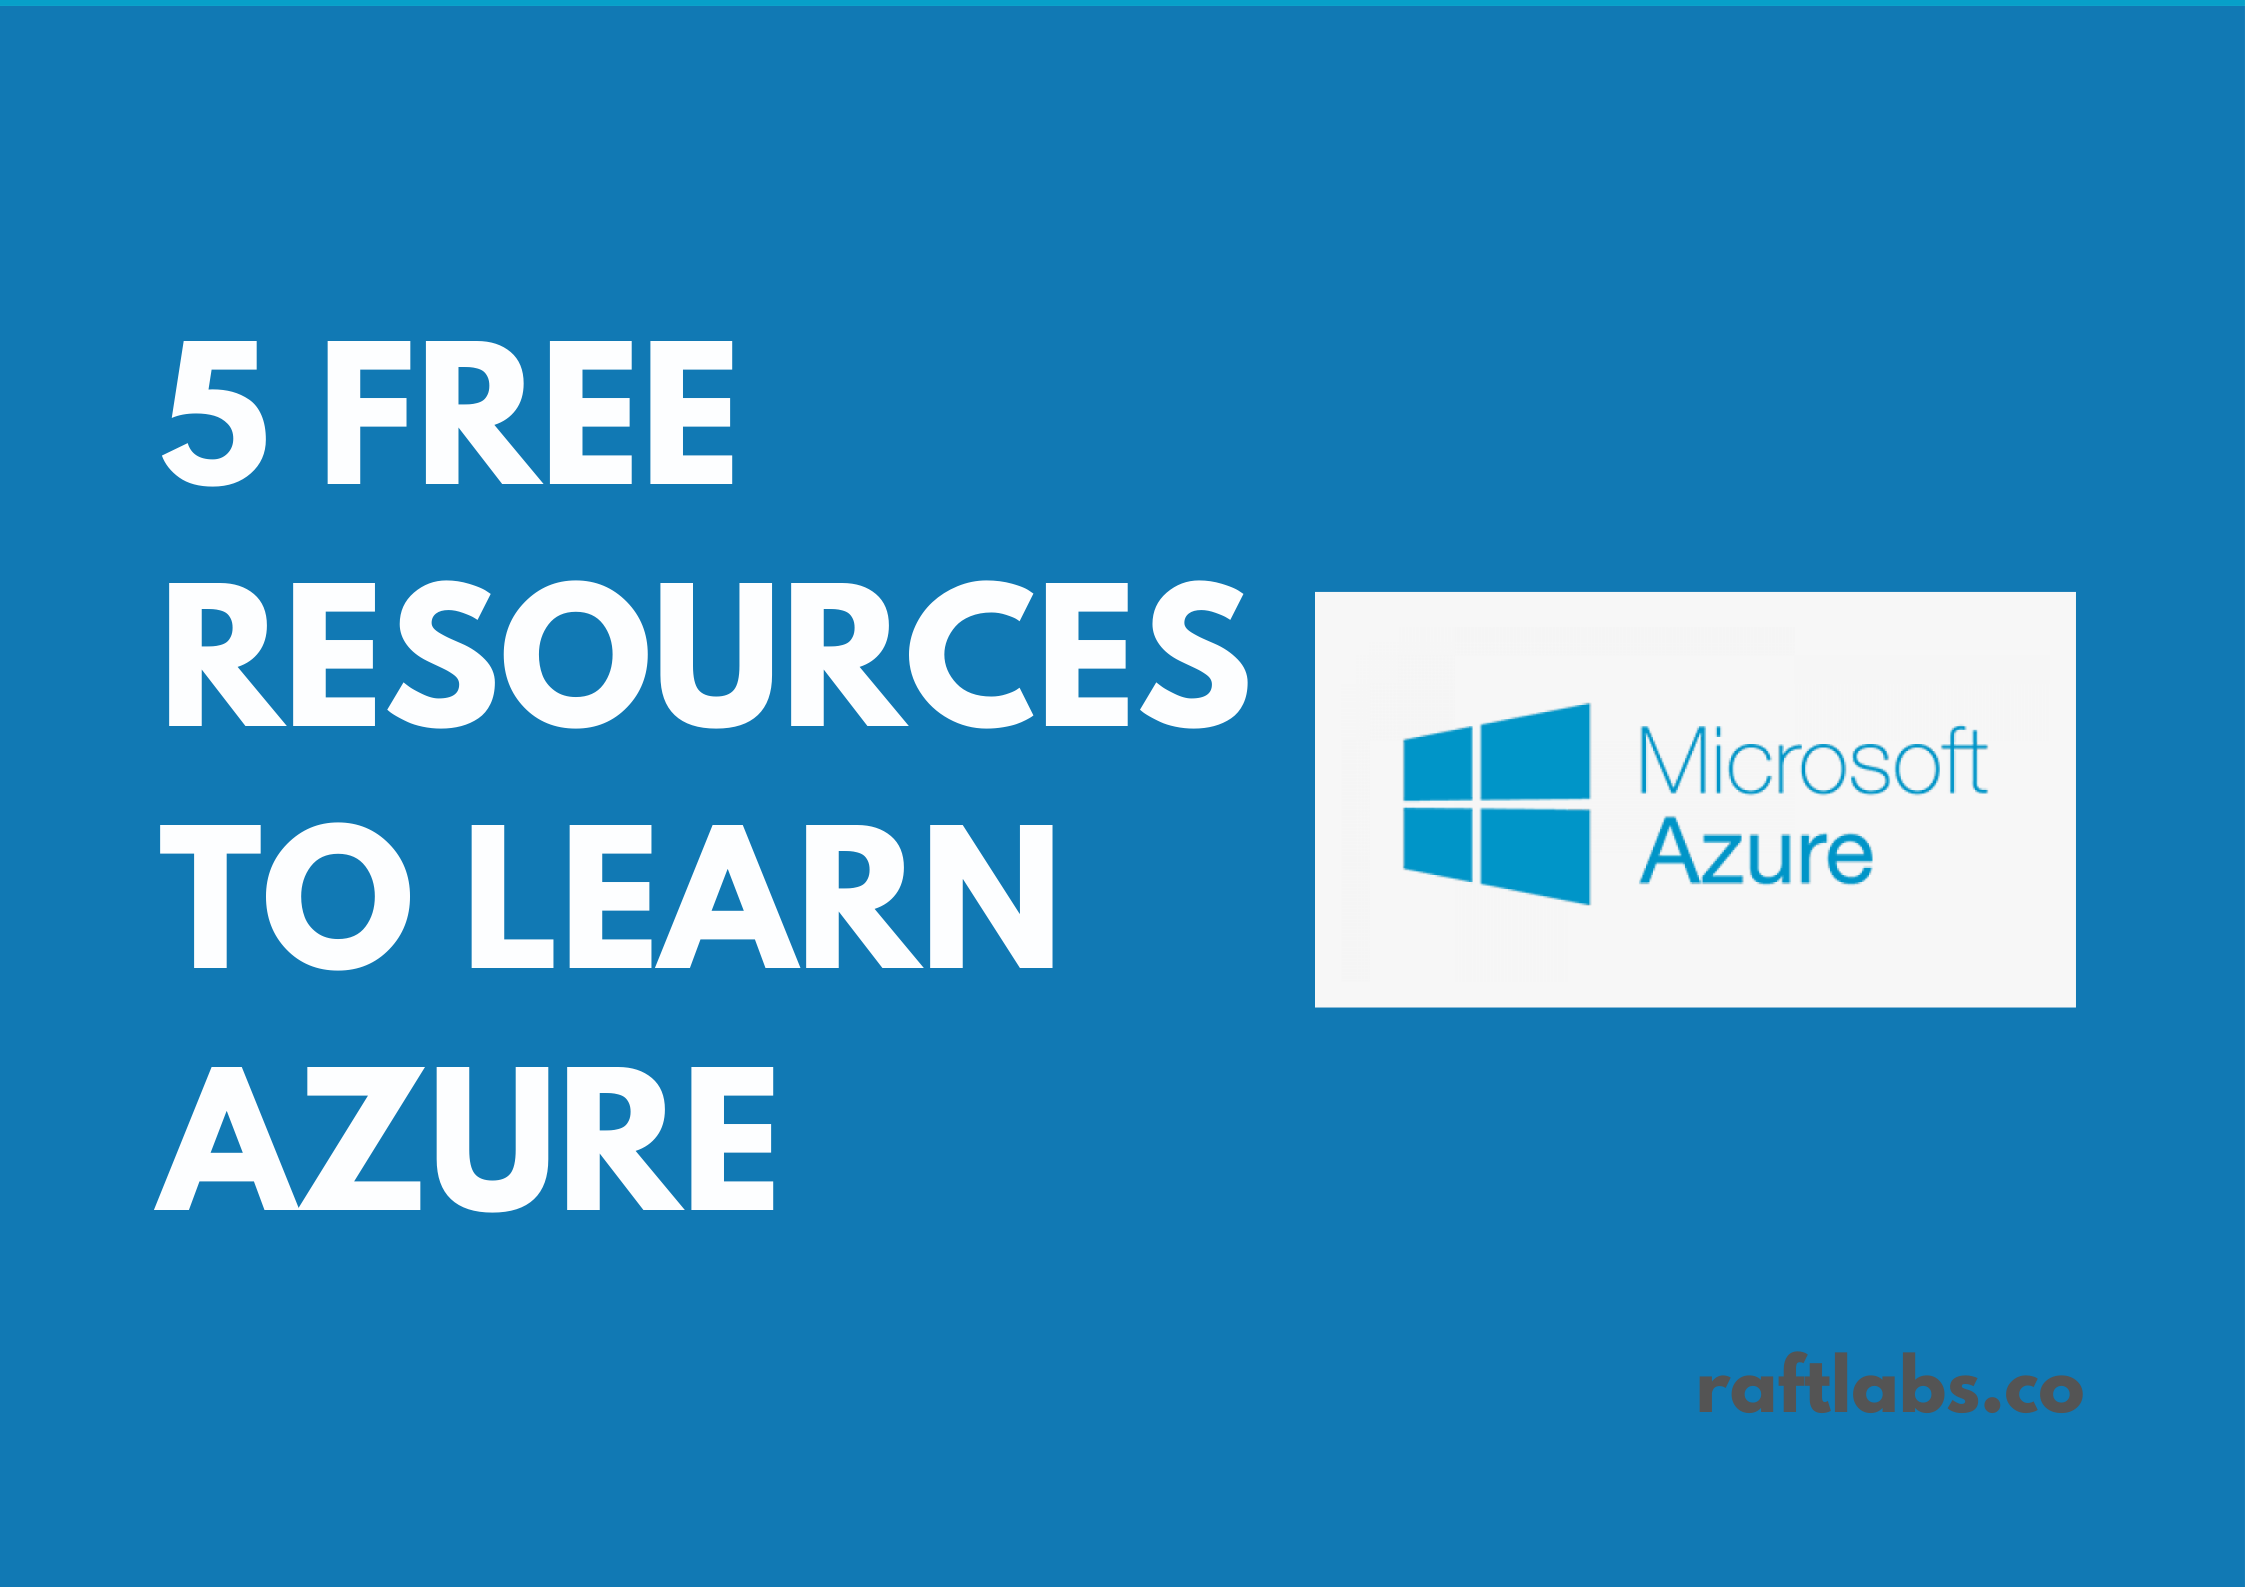 5 free resources to learn Microsoft Azure with Azure logo - raftlabs.co